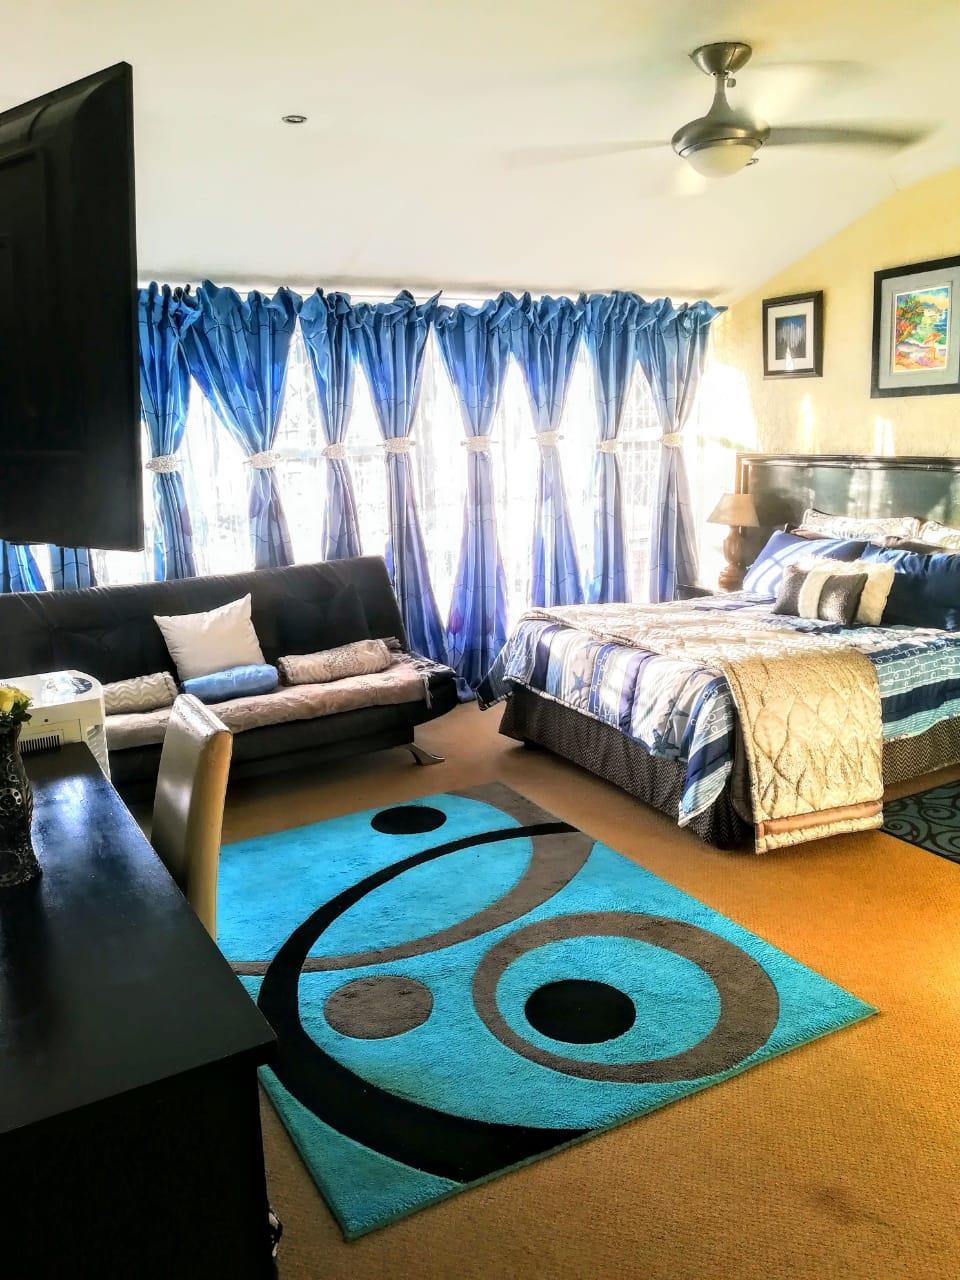 4 Bedroom House For Sale in Florida